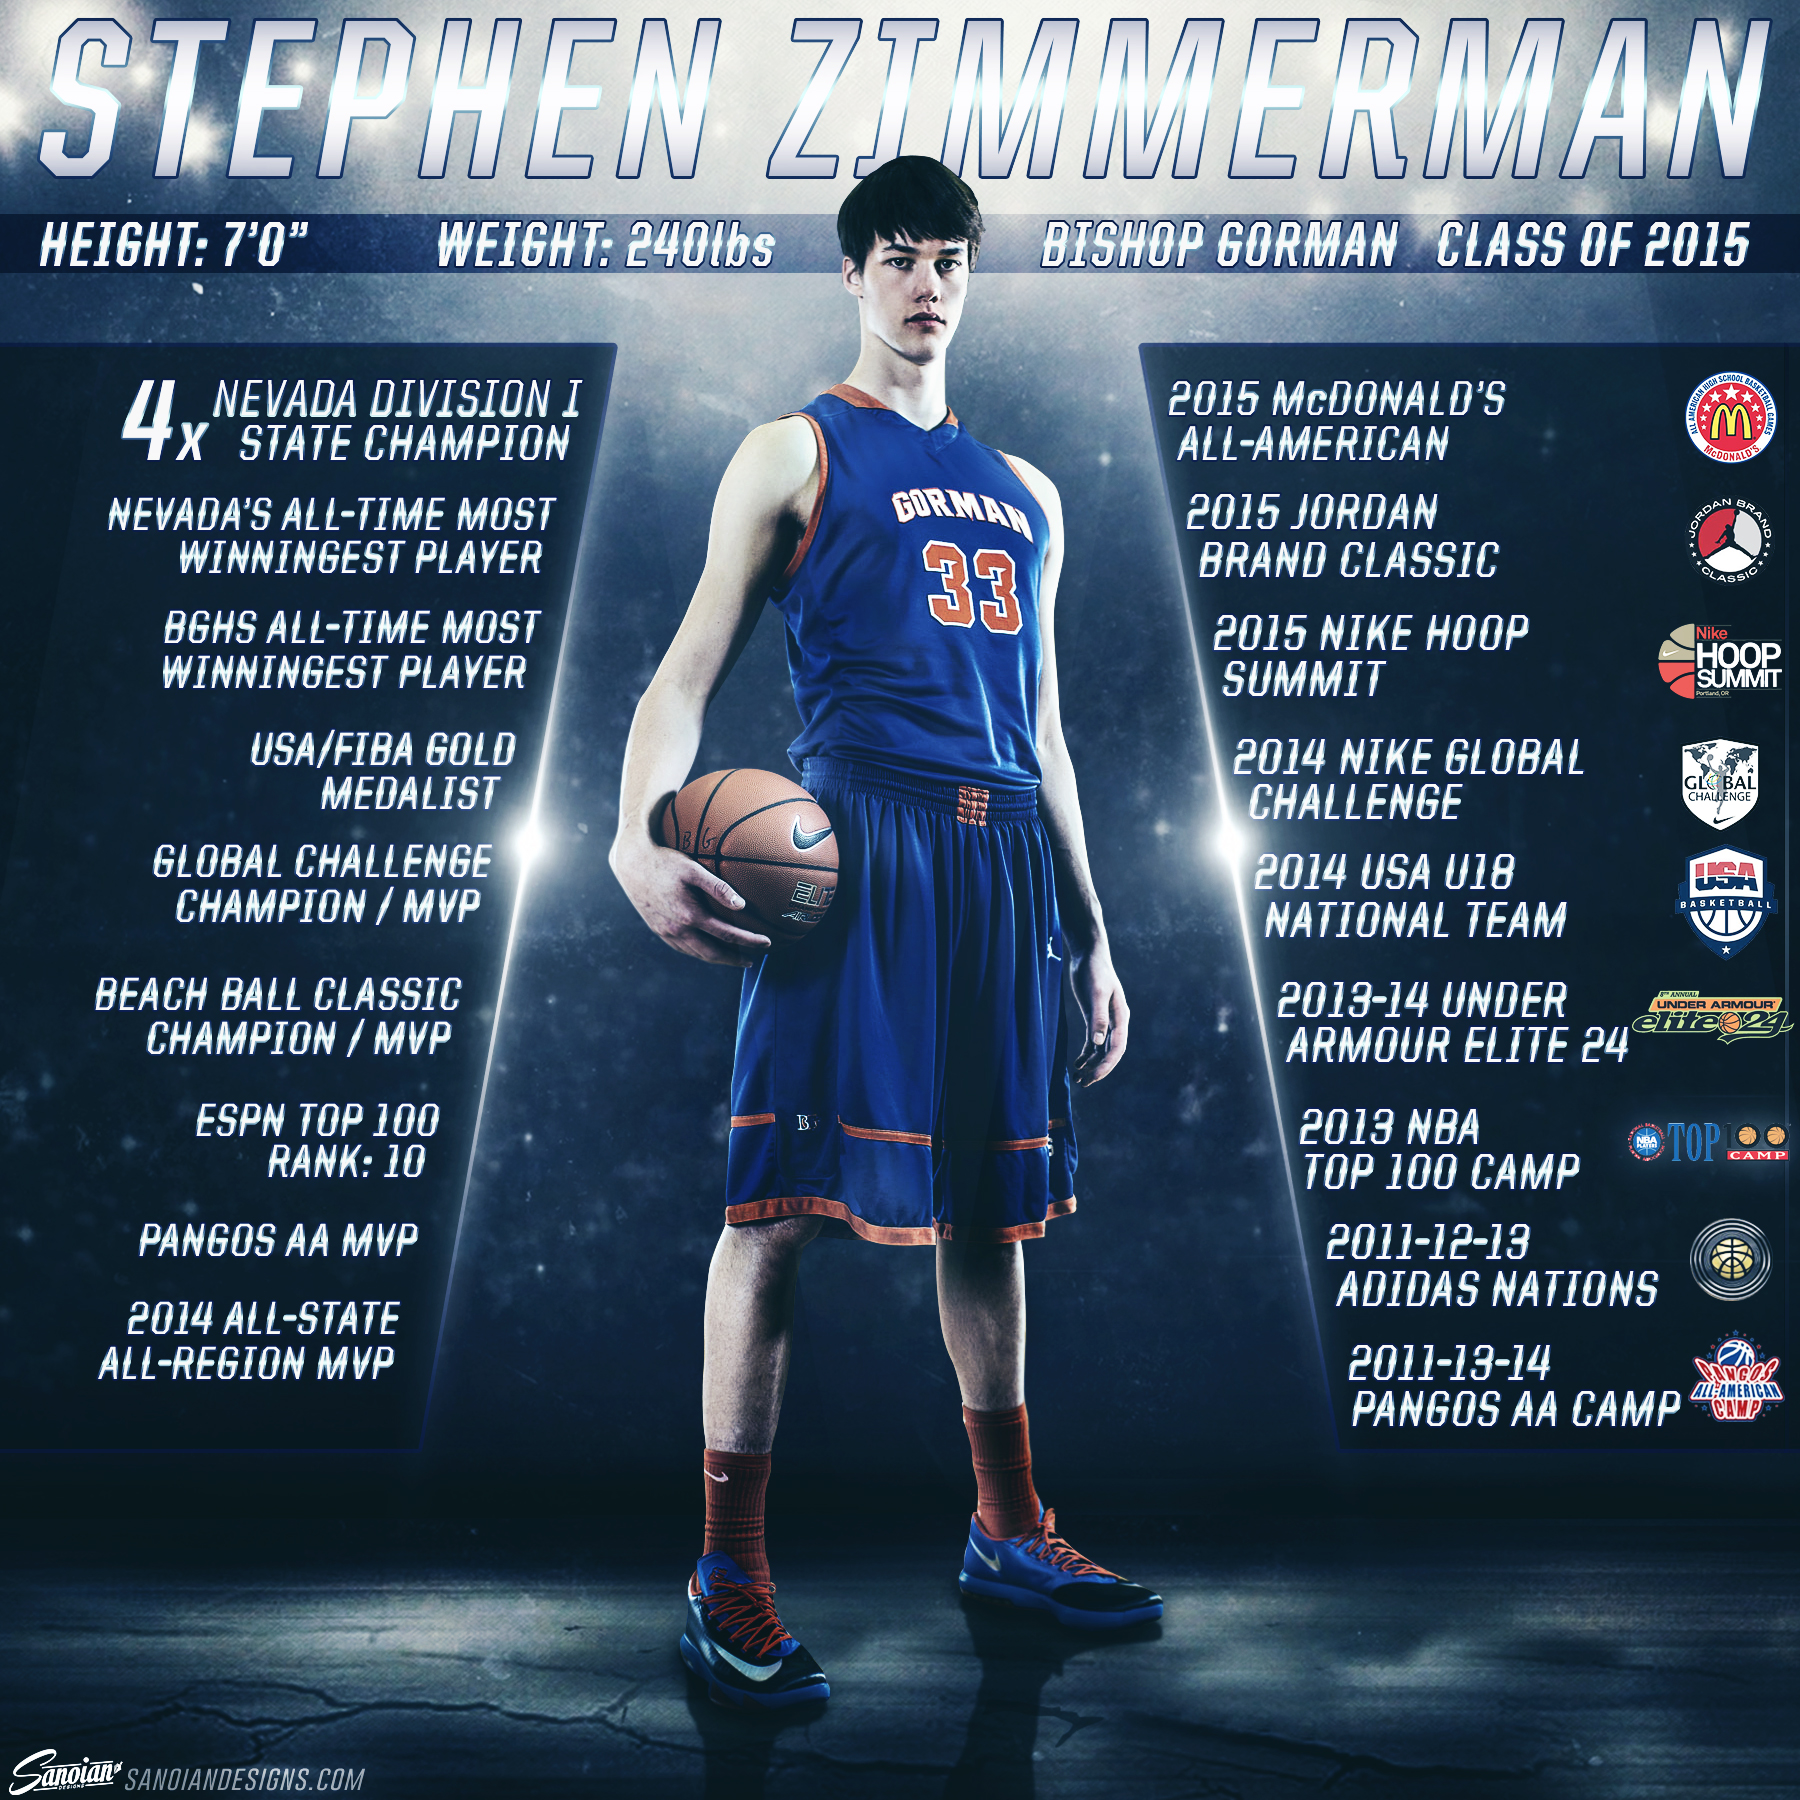 Stephen Zimmerman - Bishop Gorman